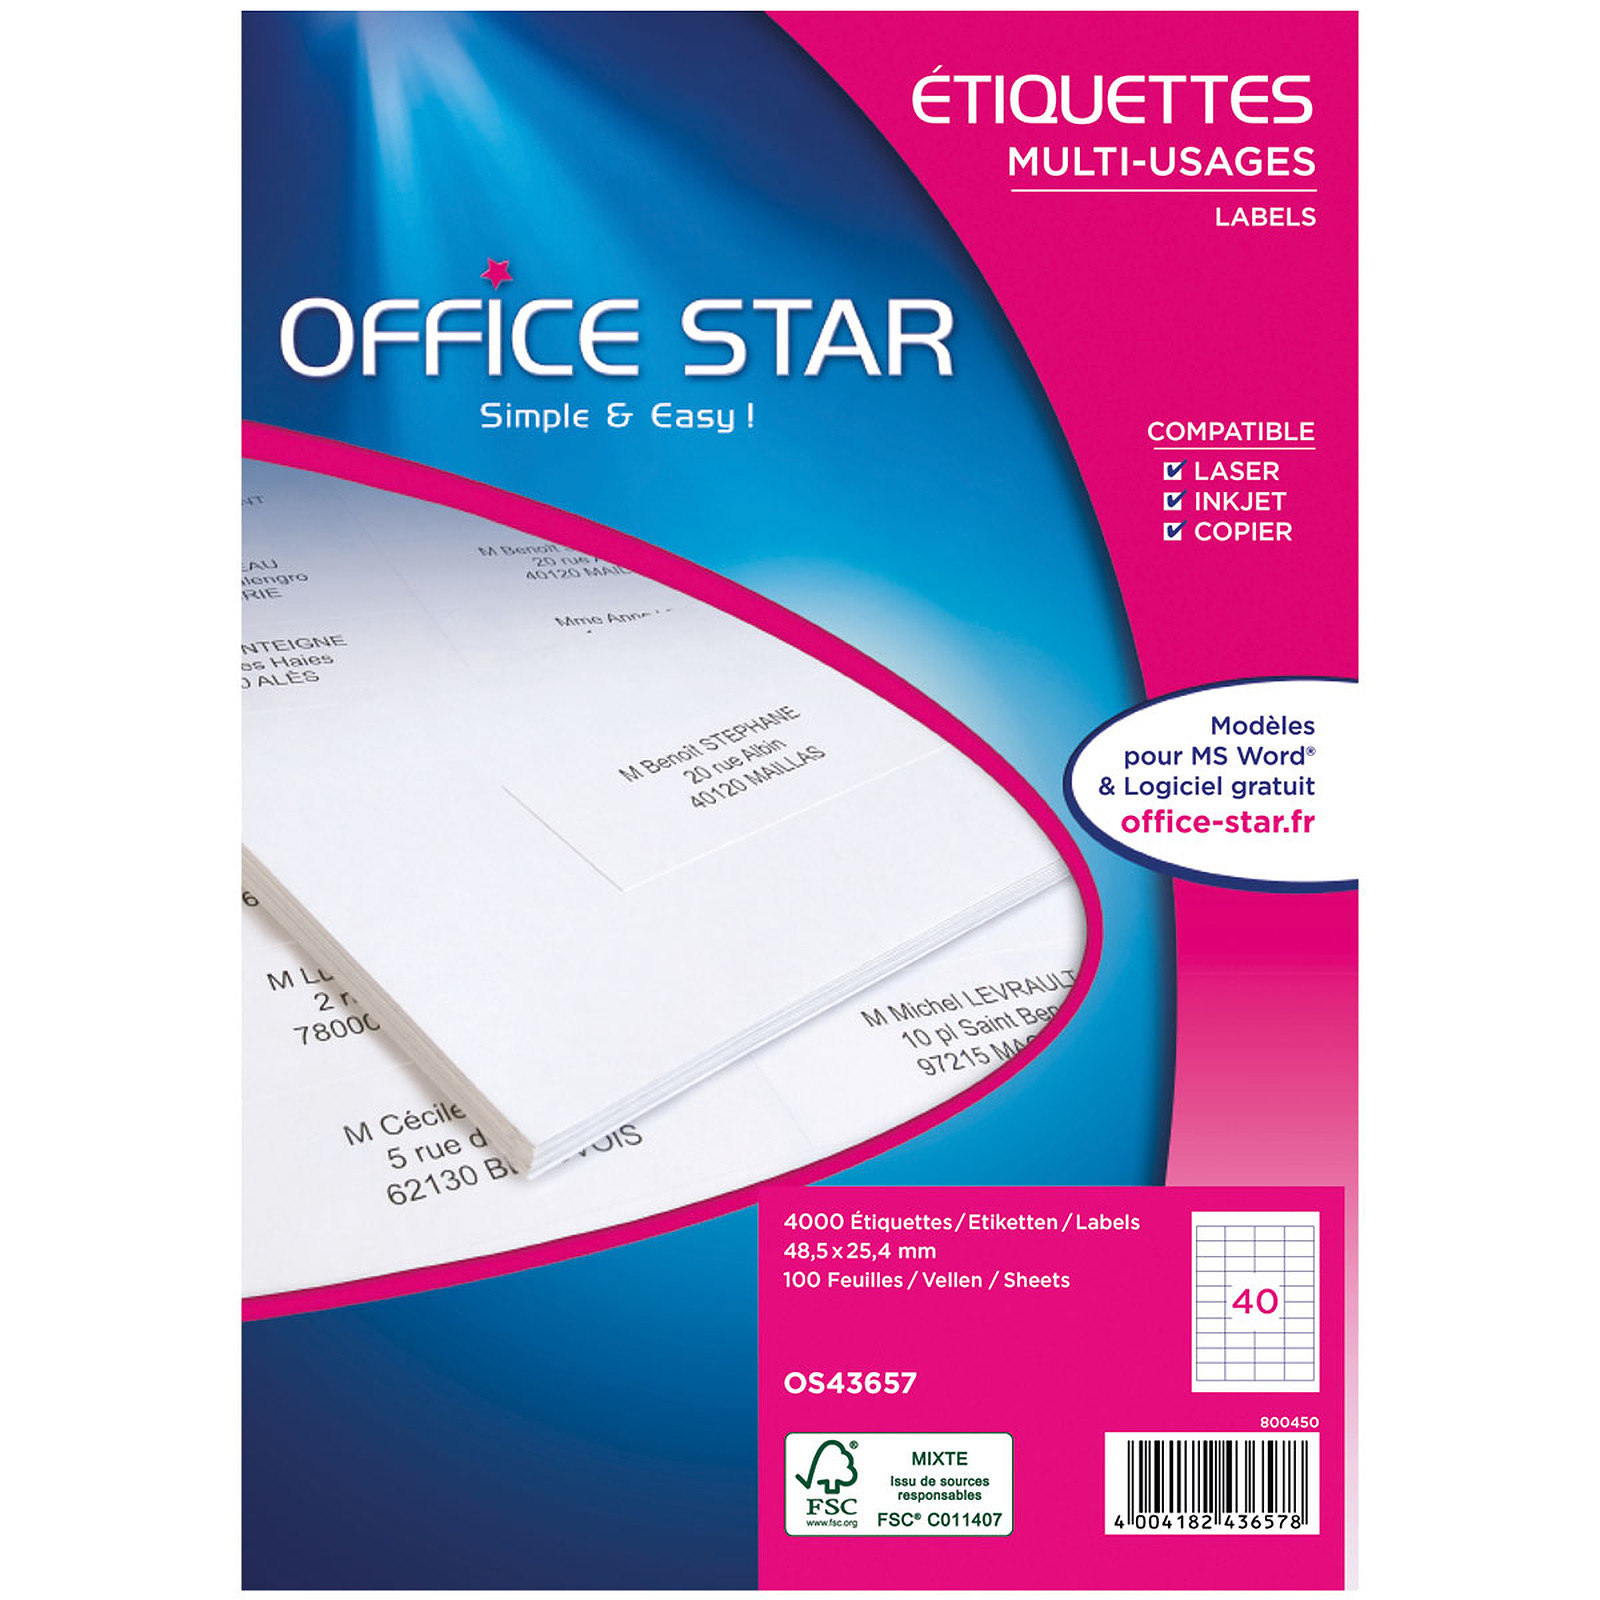 Office Star Etiquettes 48.5 x 25.4 mm x 4000